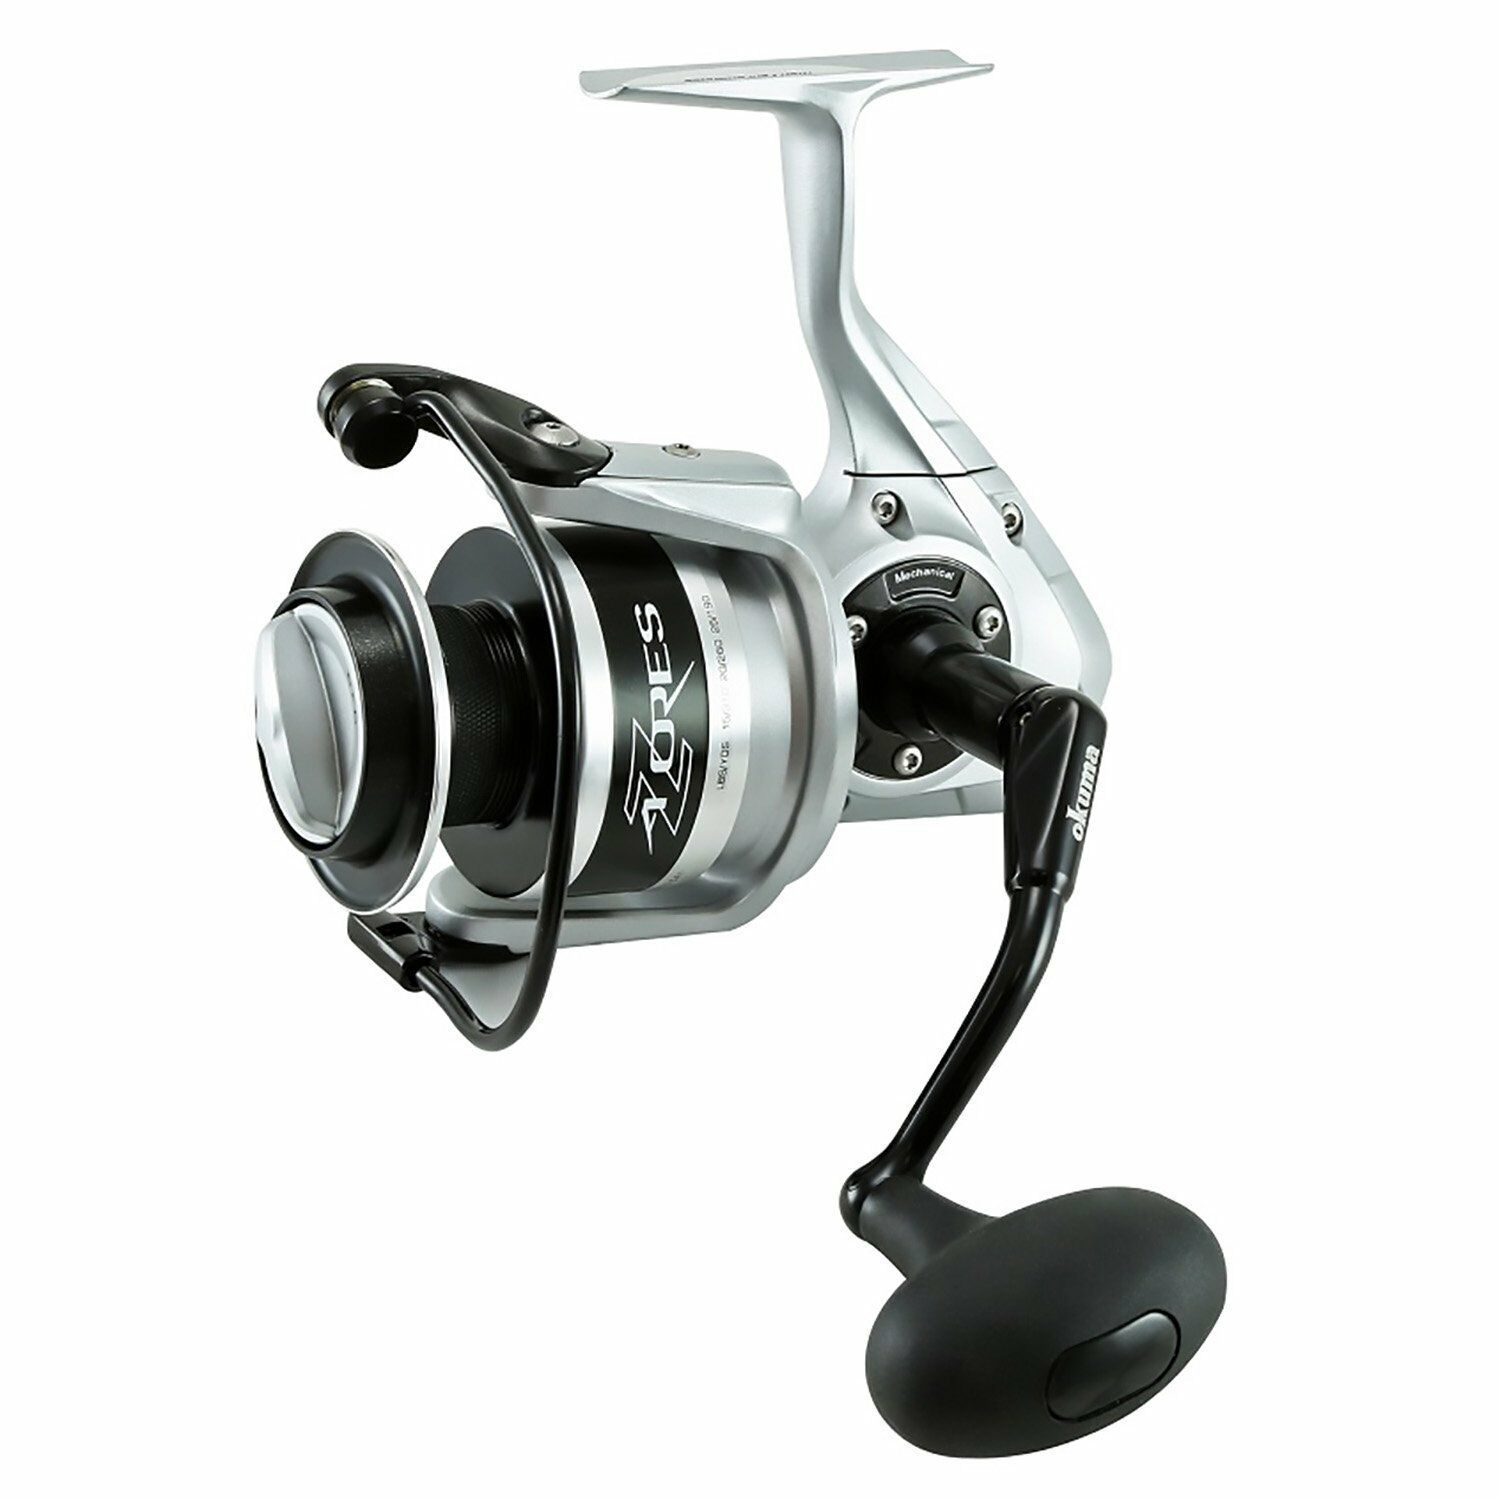 NEW Okuma Azores Aluminum SW Spinning Reel 5.8:1 6BB+1RB 15Lb 240yds 15Lb 6BB+1RB Z-55S eb1732